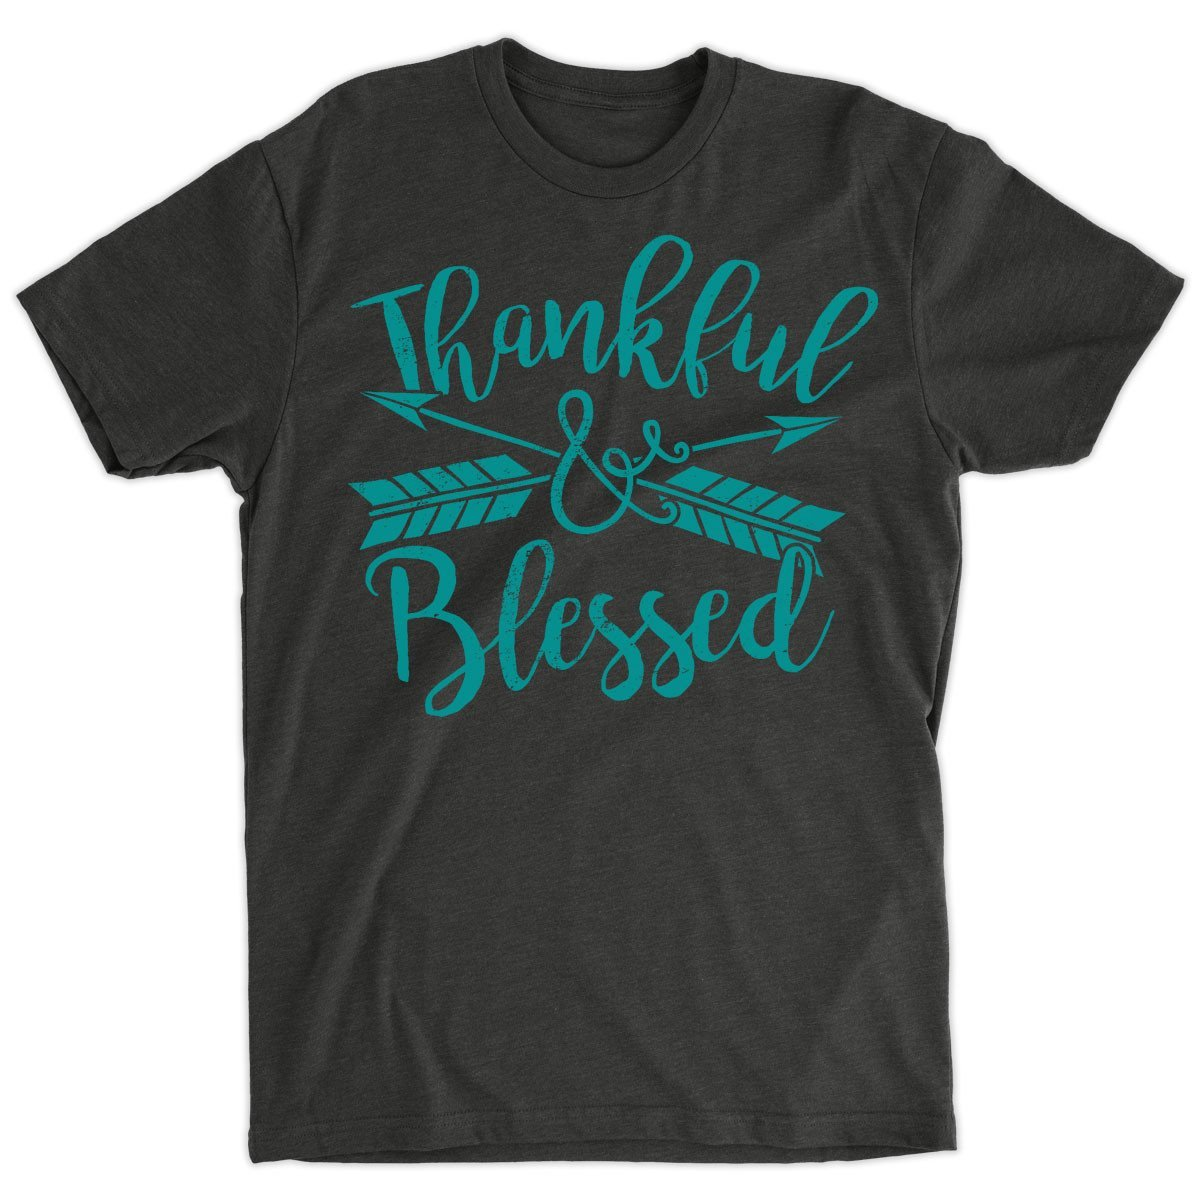 T-Shirts - Thankful & Blessed